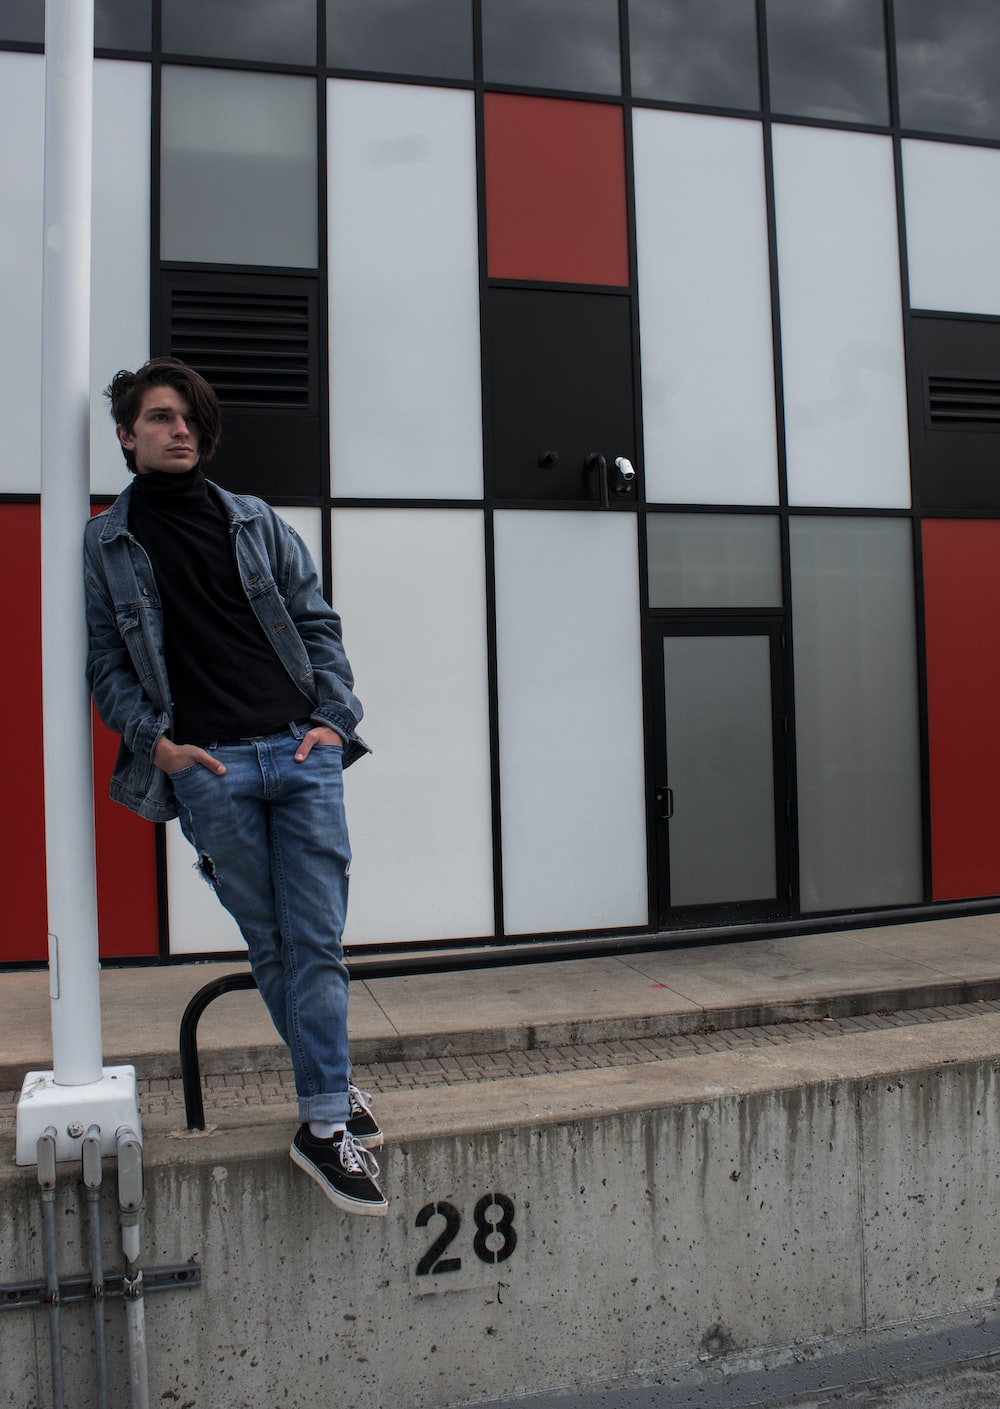 man in black jacket and blue denim jeans standing beside white and red building during daytime